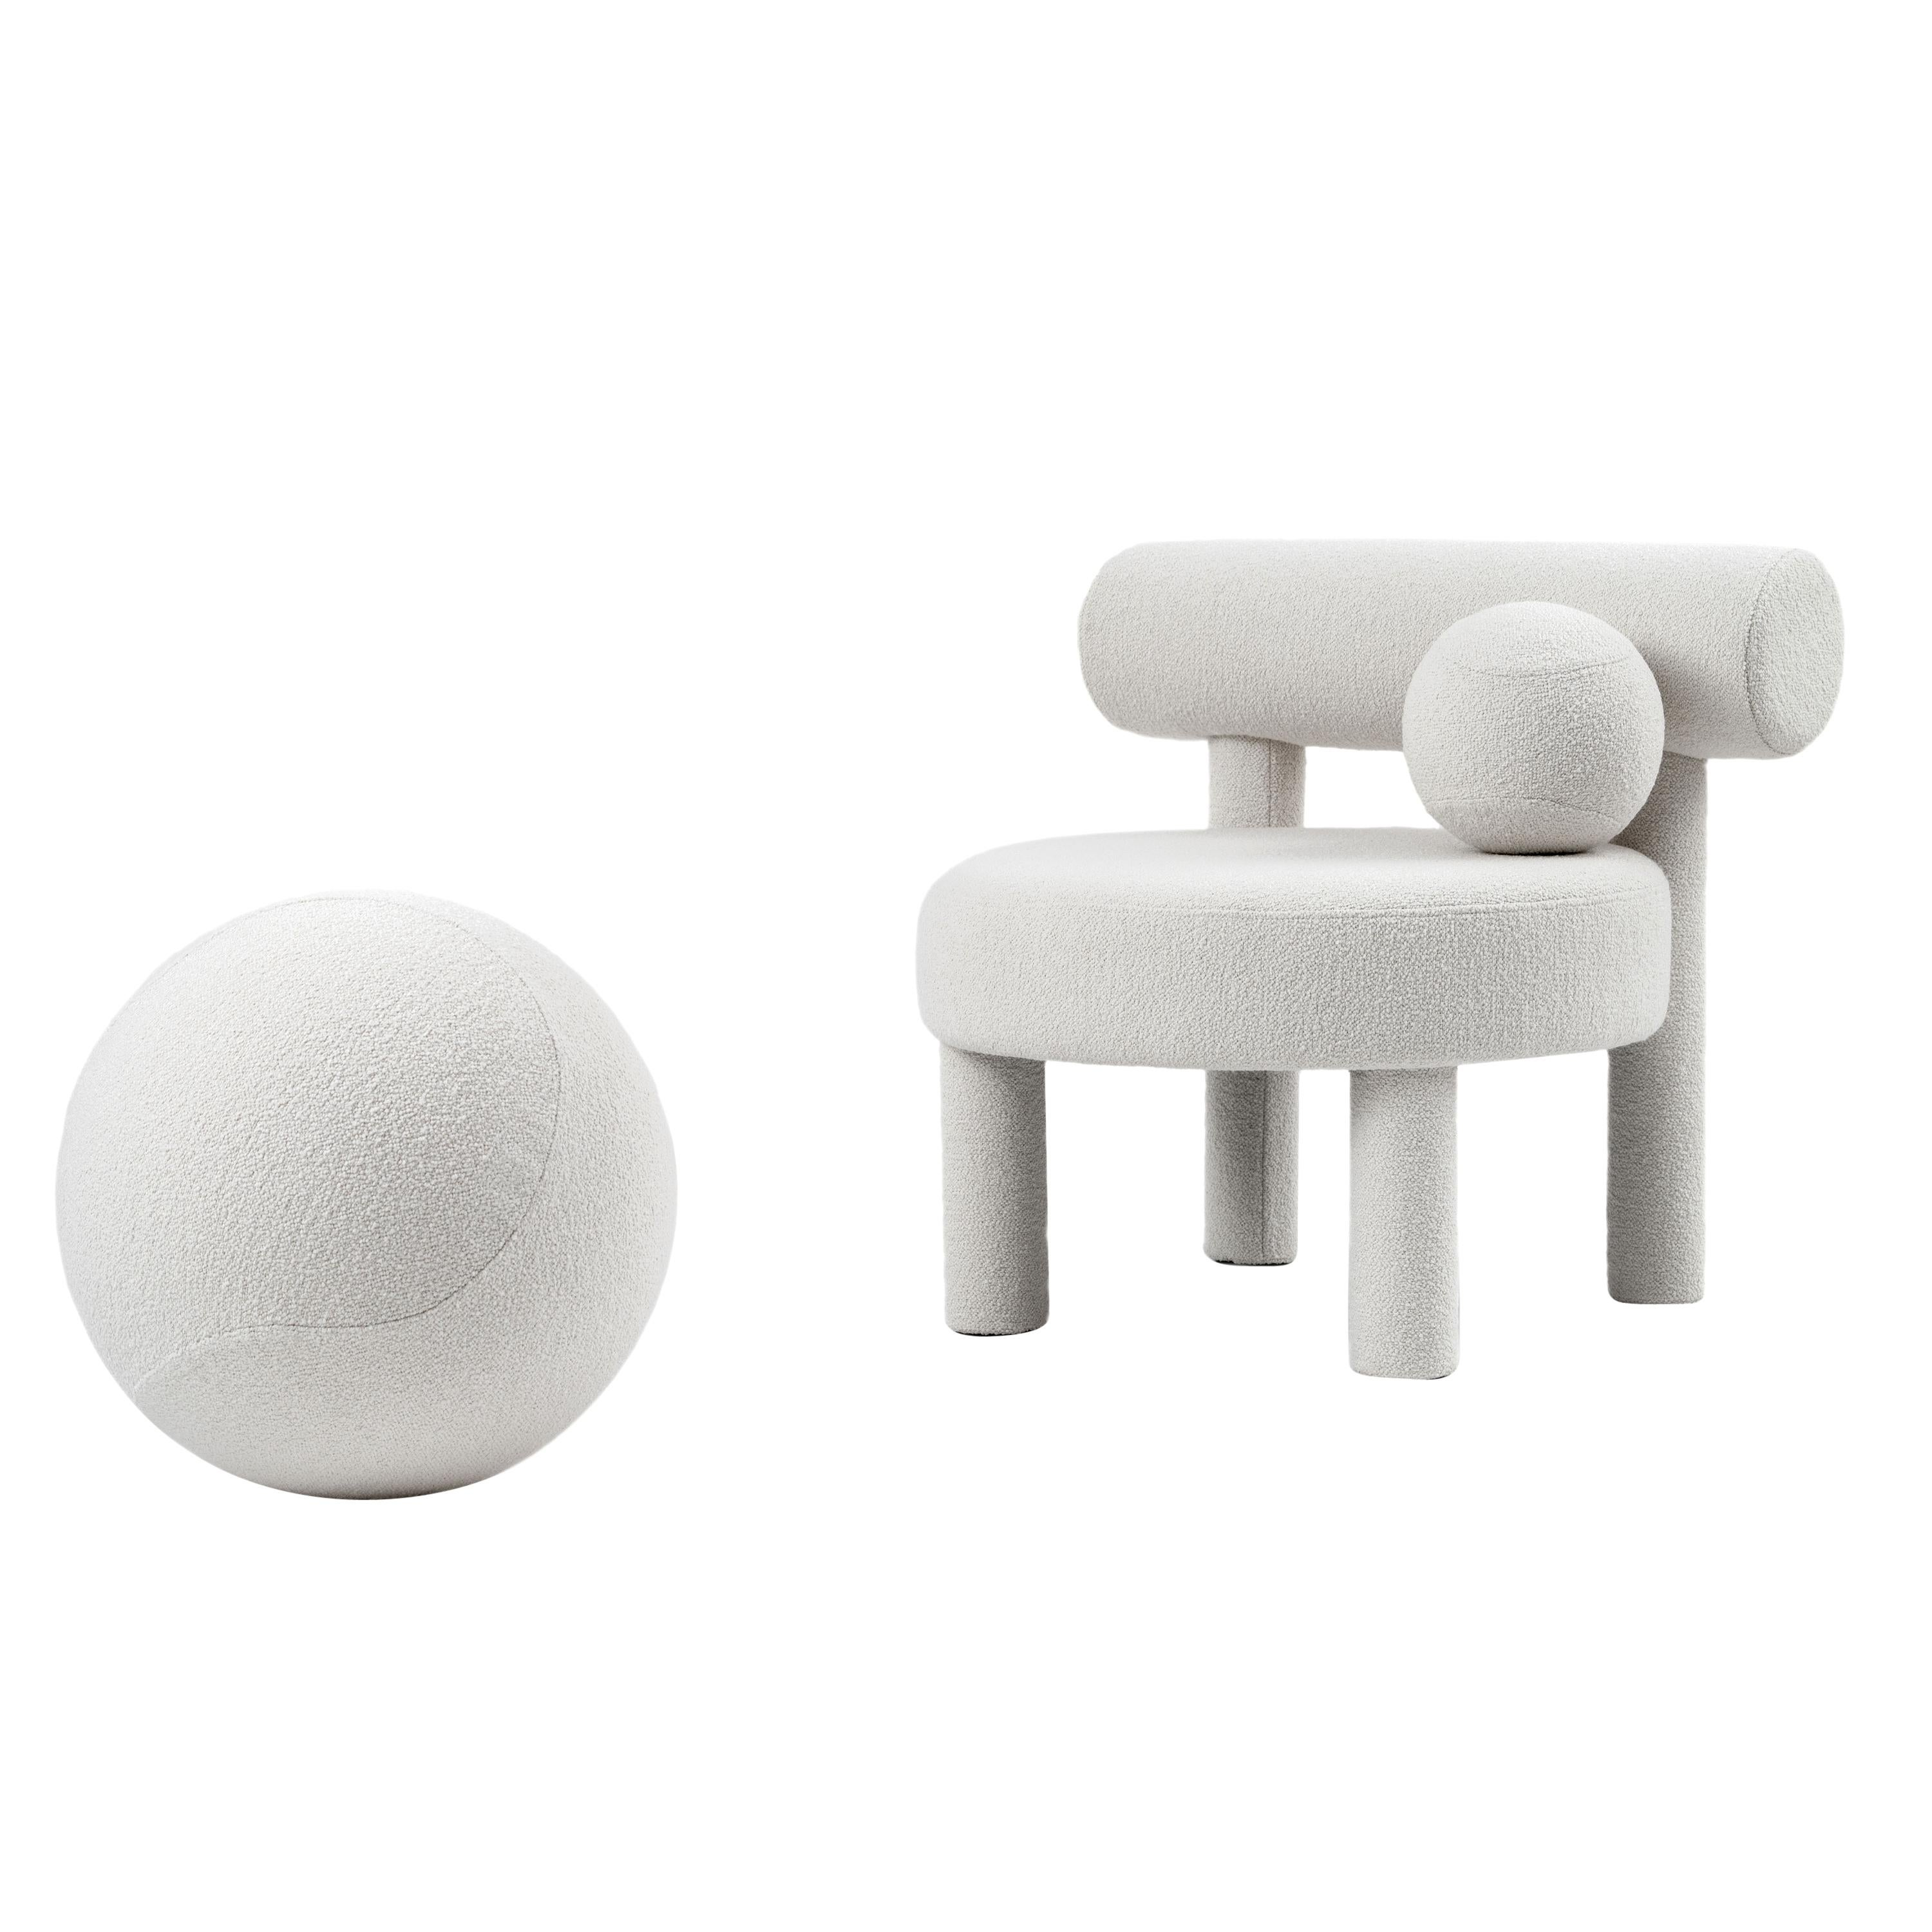 Modern Low Chair Gropius CS1 with Ottoman in Boucle Fabric by NOOM